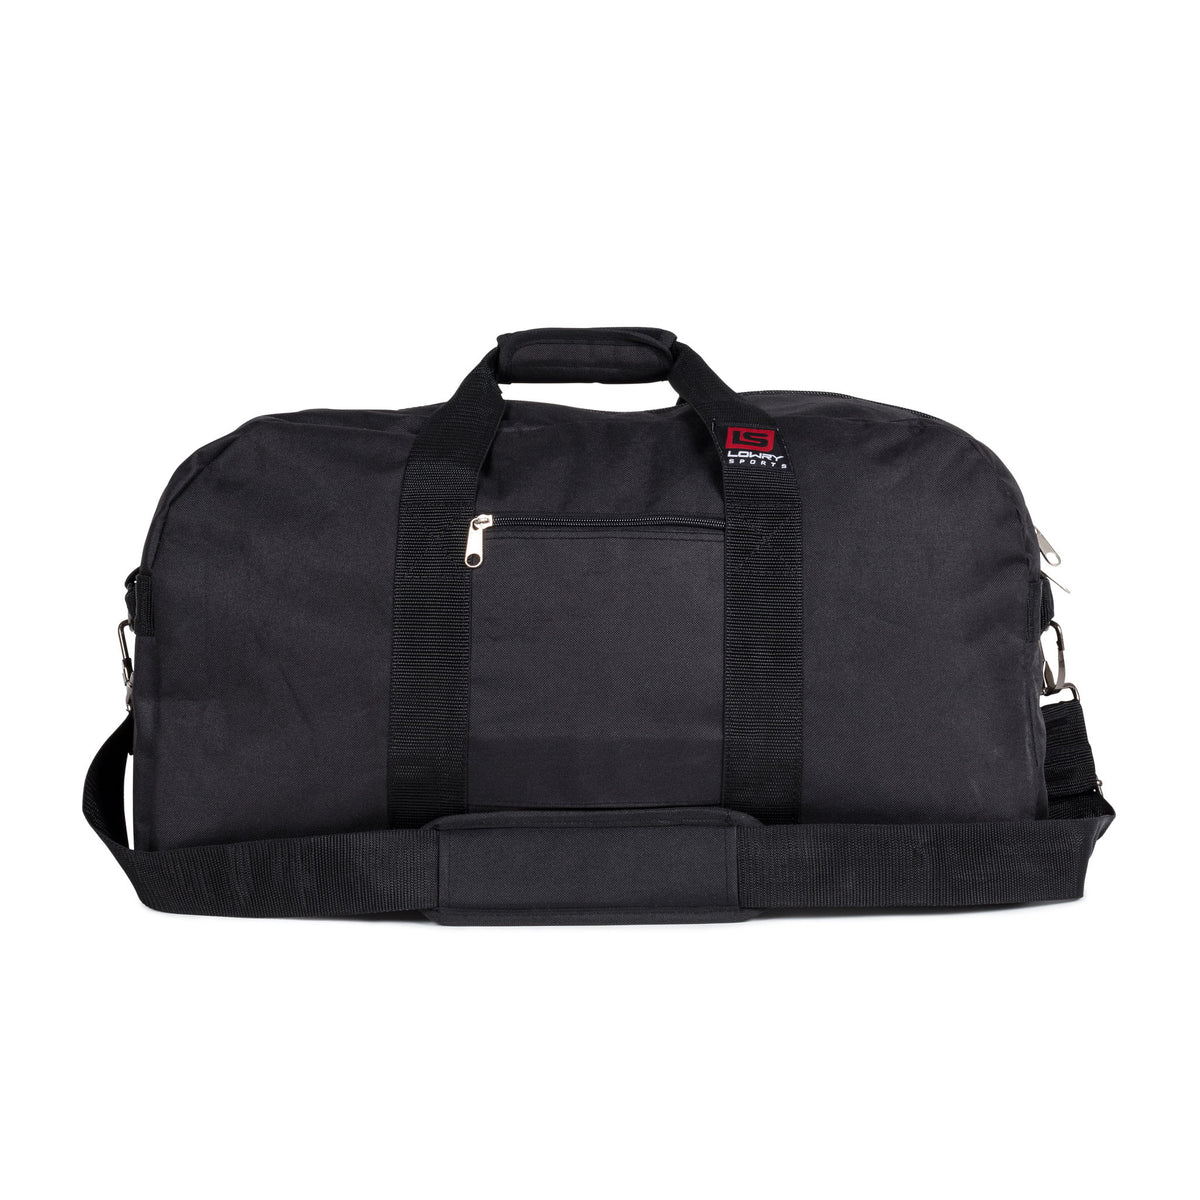 9dcde88771d Lowry Nylon Duffle Bag – The Hockey Shop Source For Sports